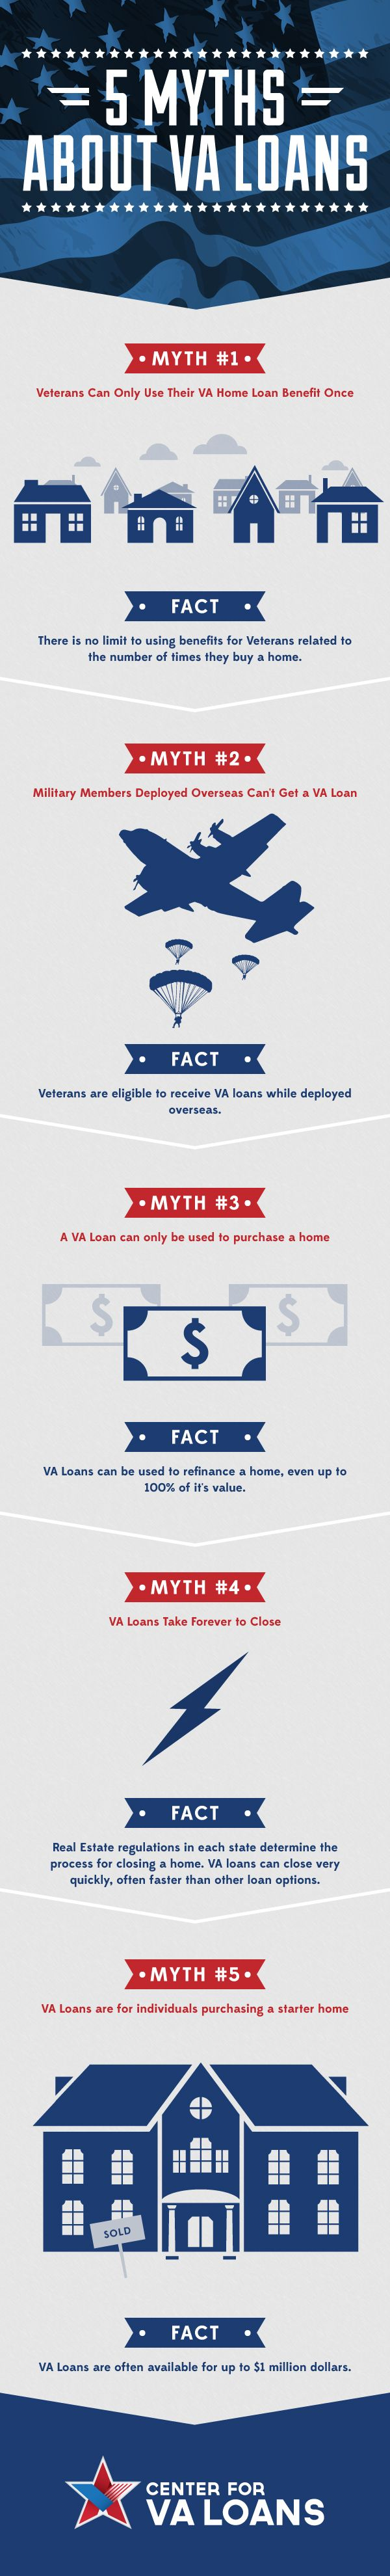 25+ best Va house loan ideas on Pinterest | Home buying process ...